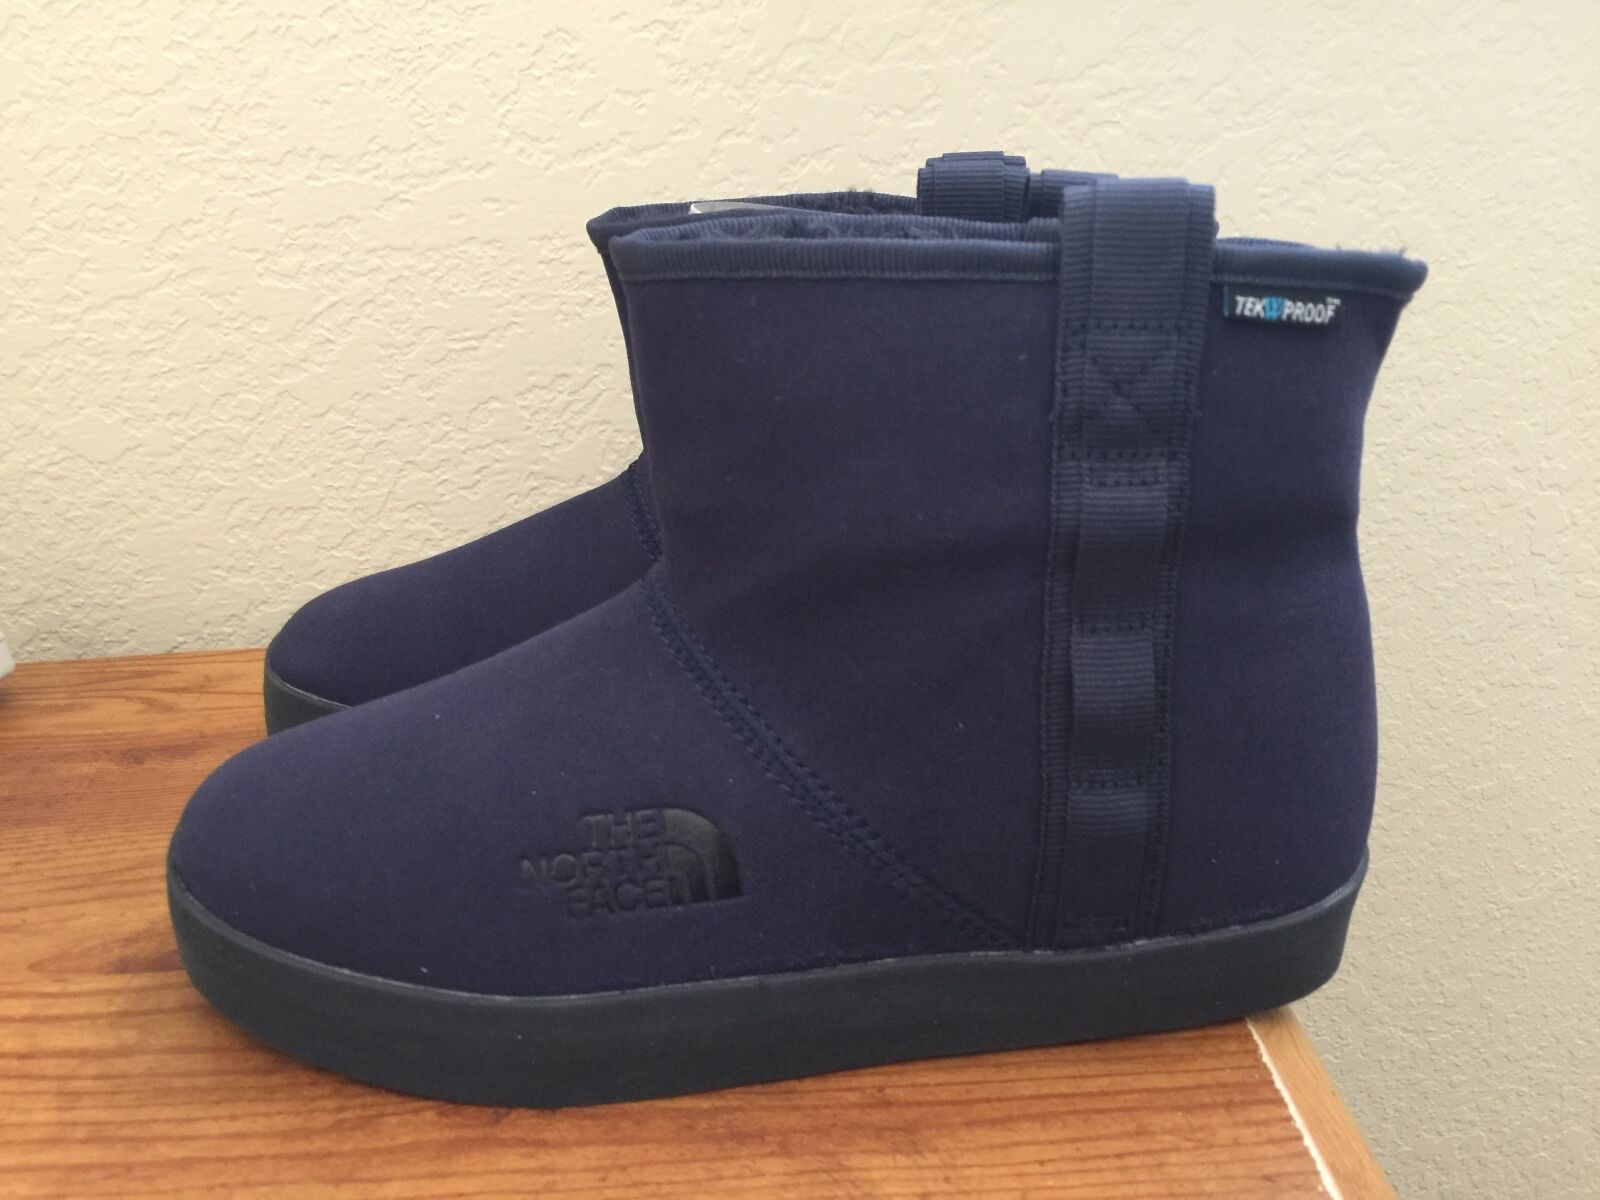 New Authentic Navy Blue NORTH FACE Winter Camp Short Slipon Boots Bootie 7 7.5